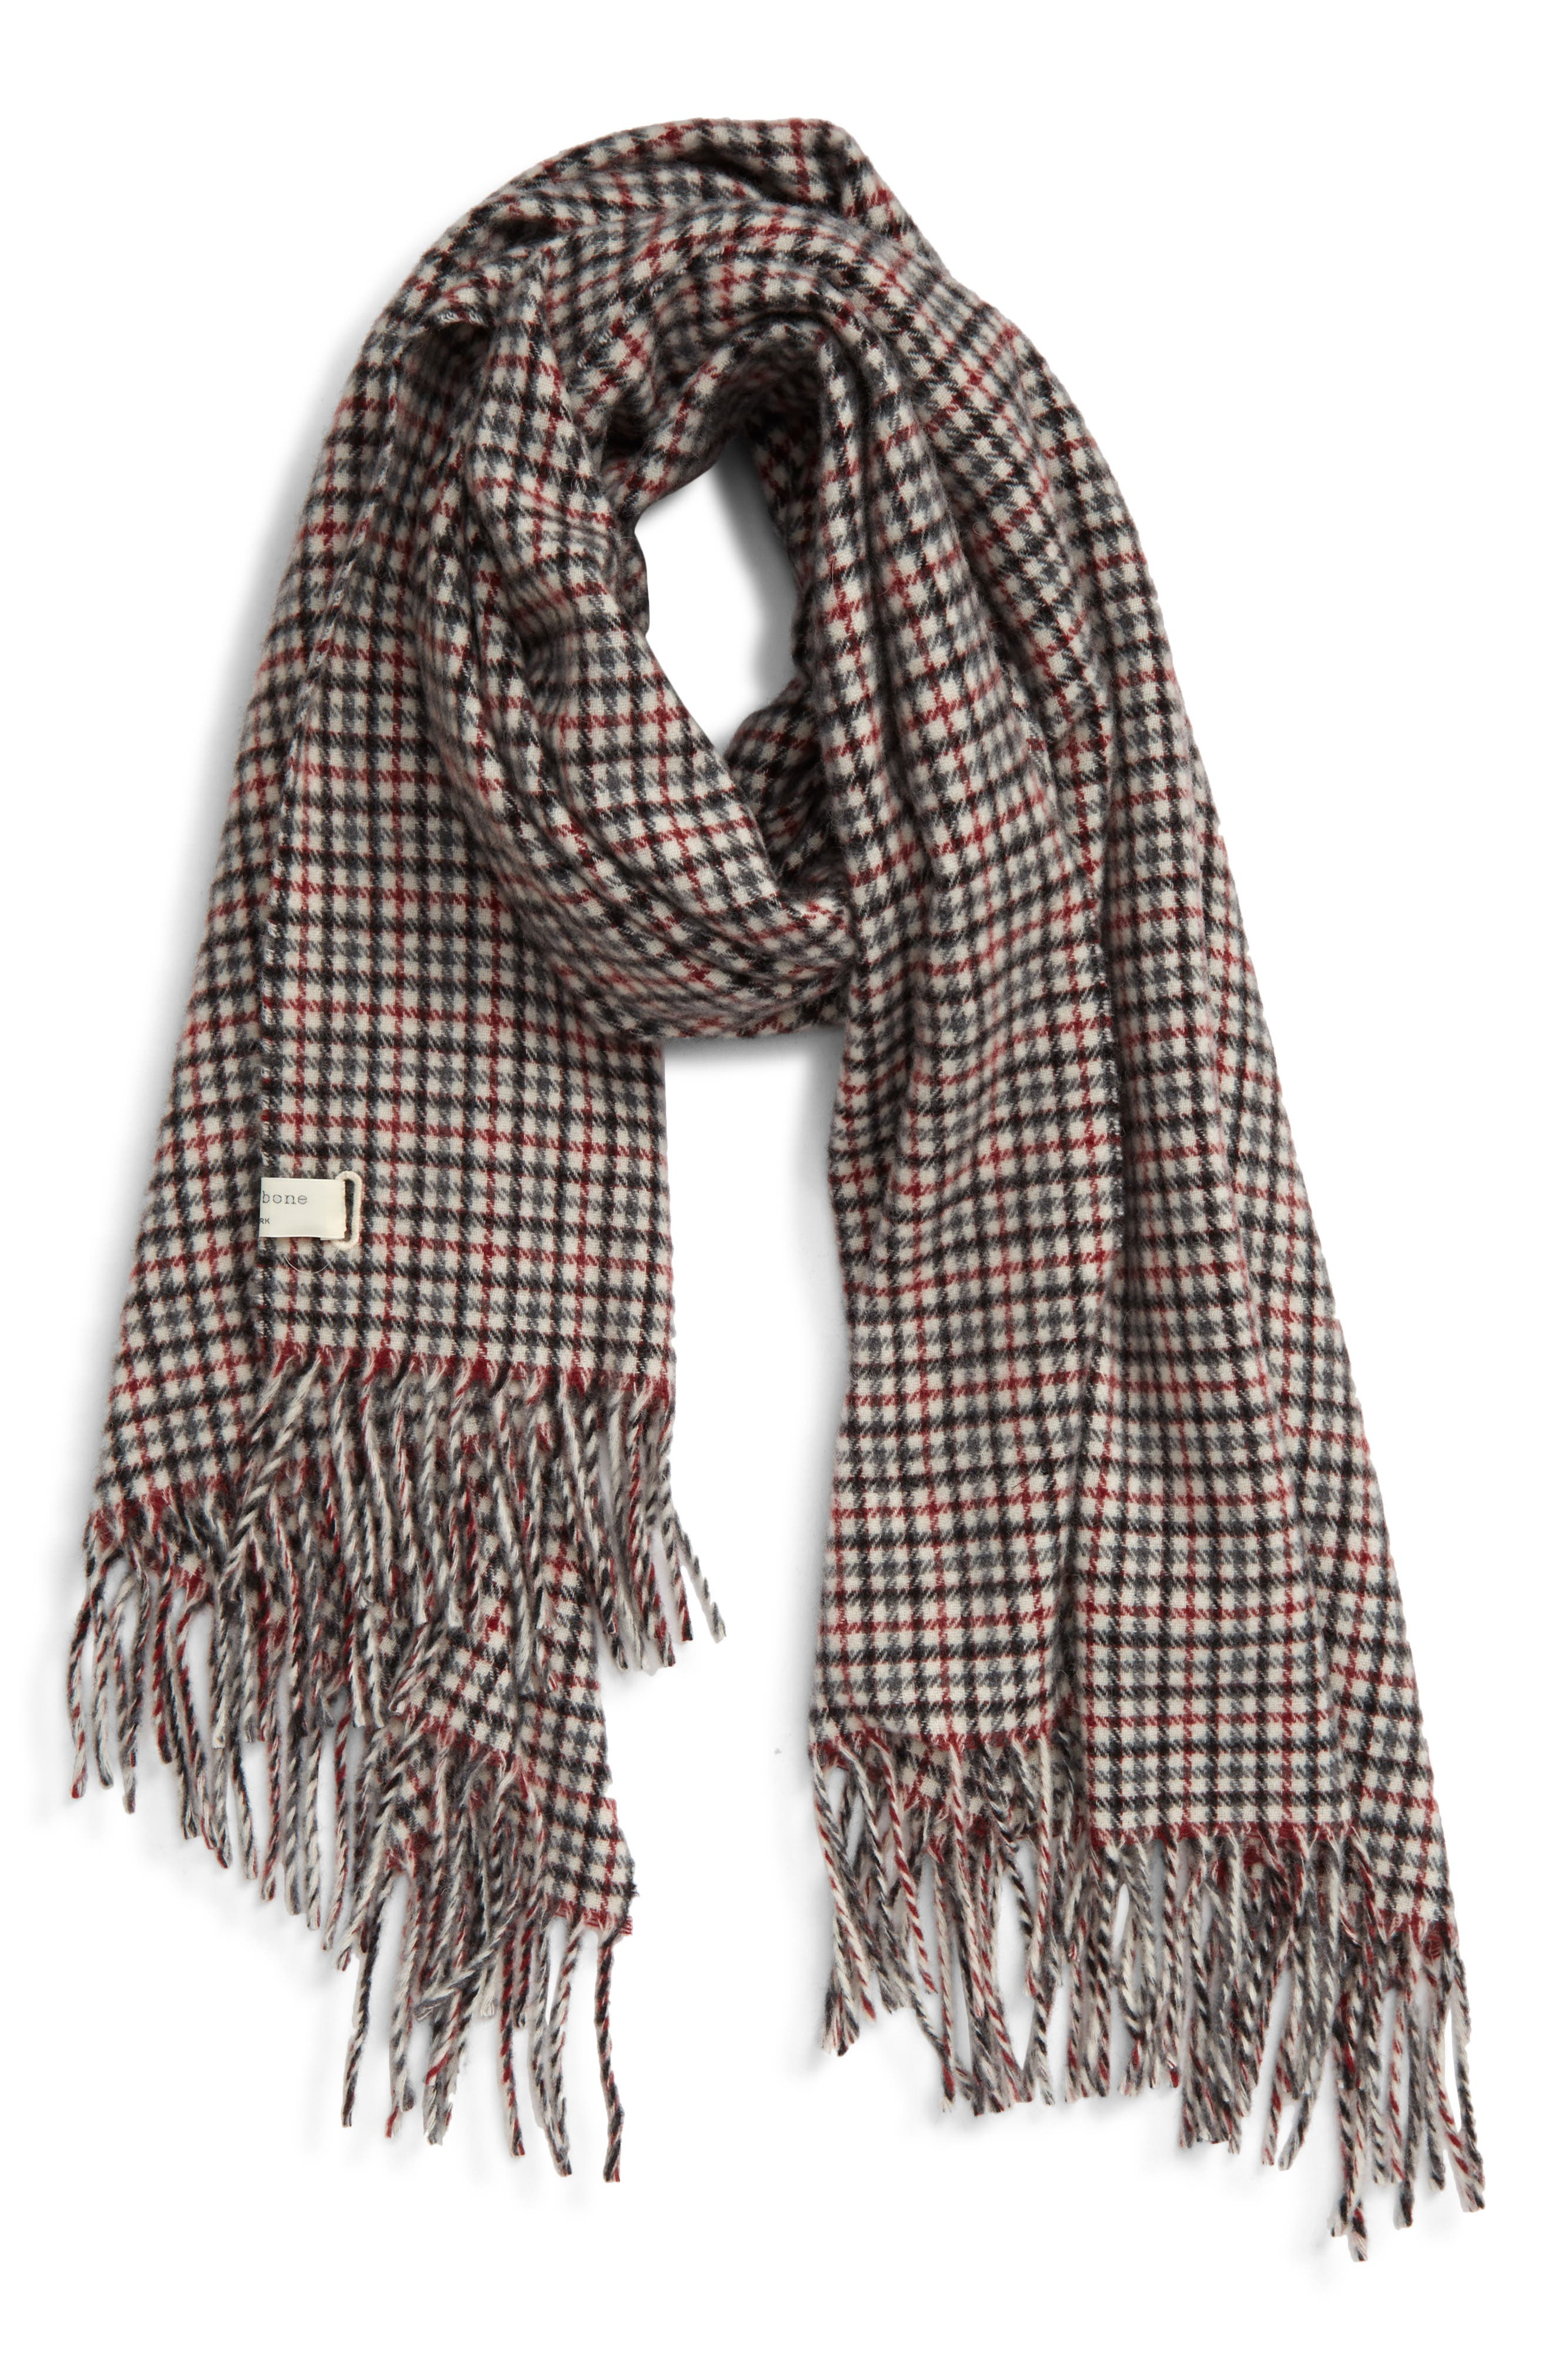 Winter Long Scarf Wrap Thick Weight Mustard Blue Grey Check Pattern Gift